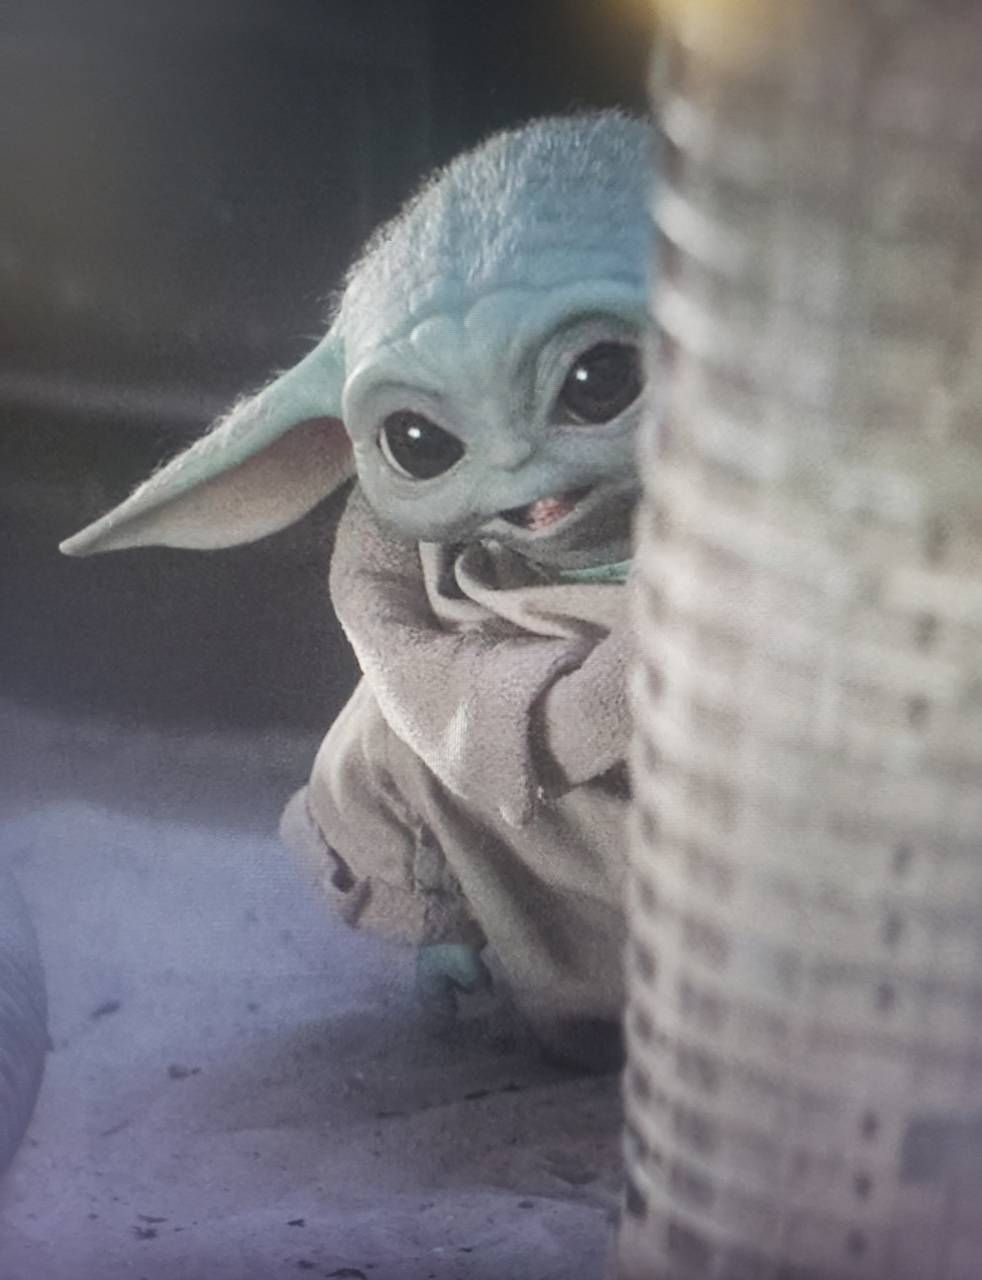 Download Baby Yoda wallpaper by Alexandriamadison a7